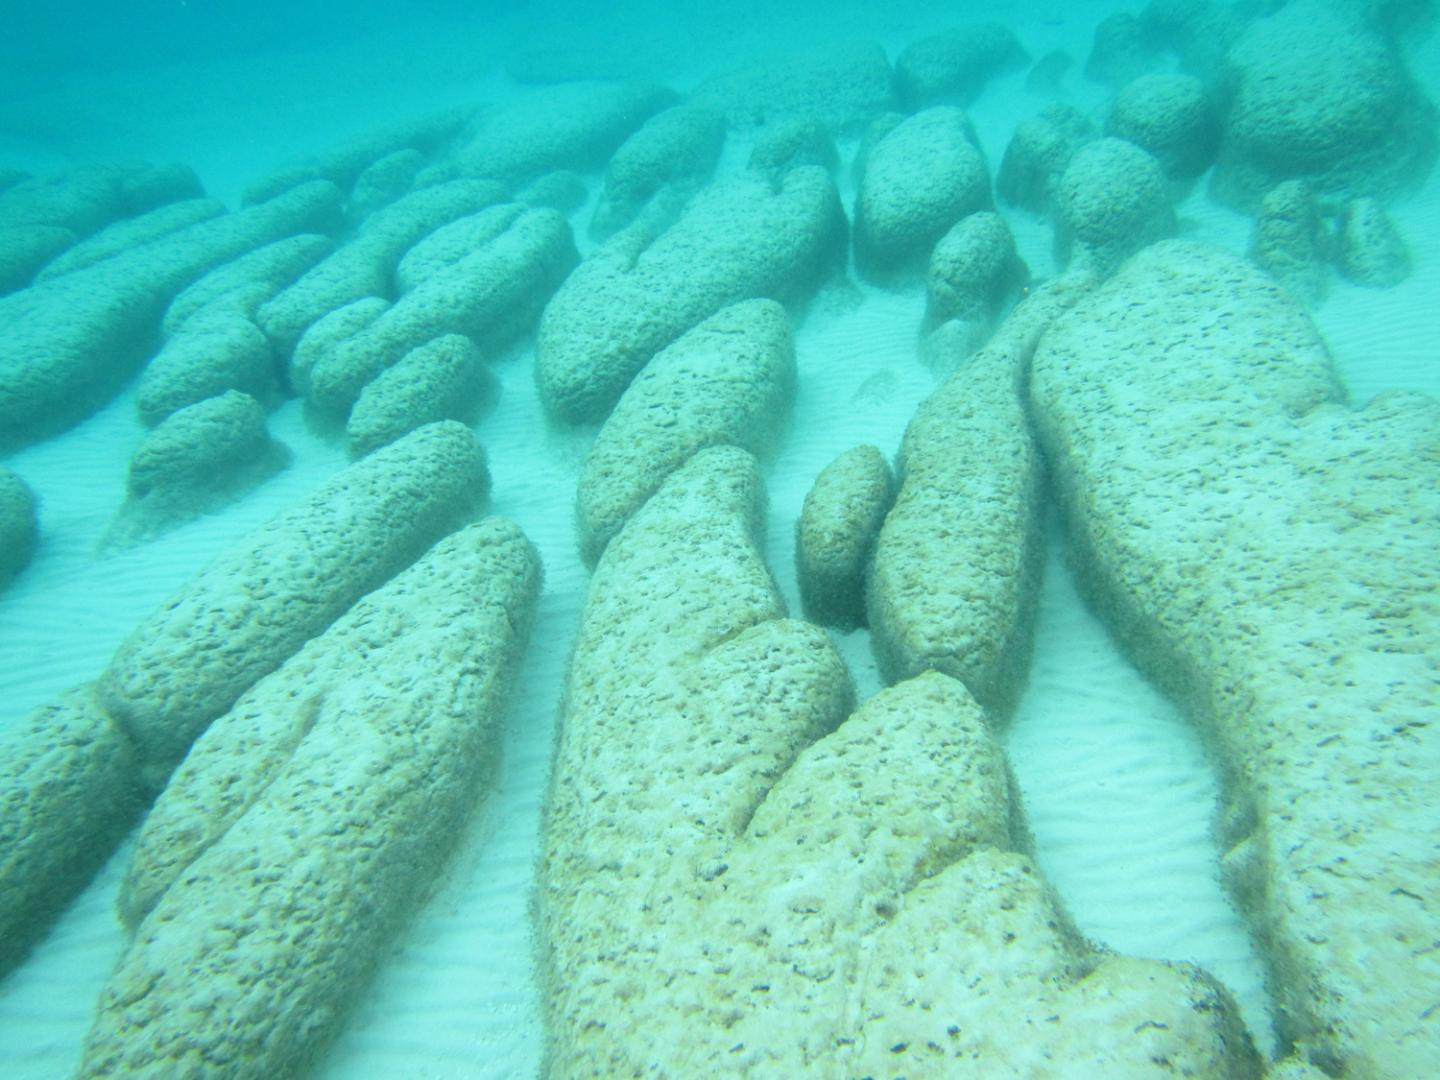 Microbial reefs called stromatolites are examples of biological structures found as far back as 3.7 billion years ago. Image credit: Pamela Reid, Ph.D., University of Miami Rosenstiel School of Marine and Atmospheric Science